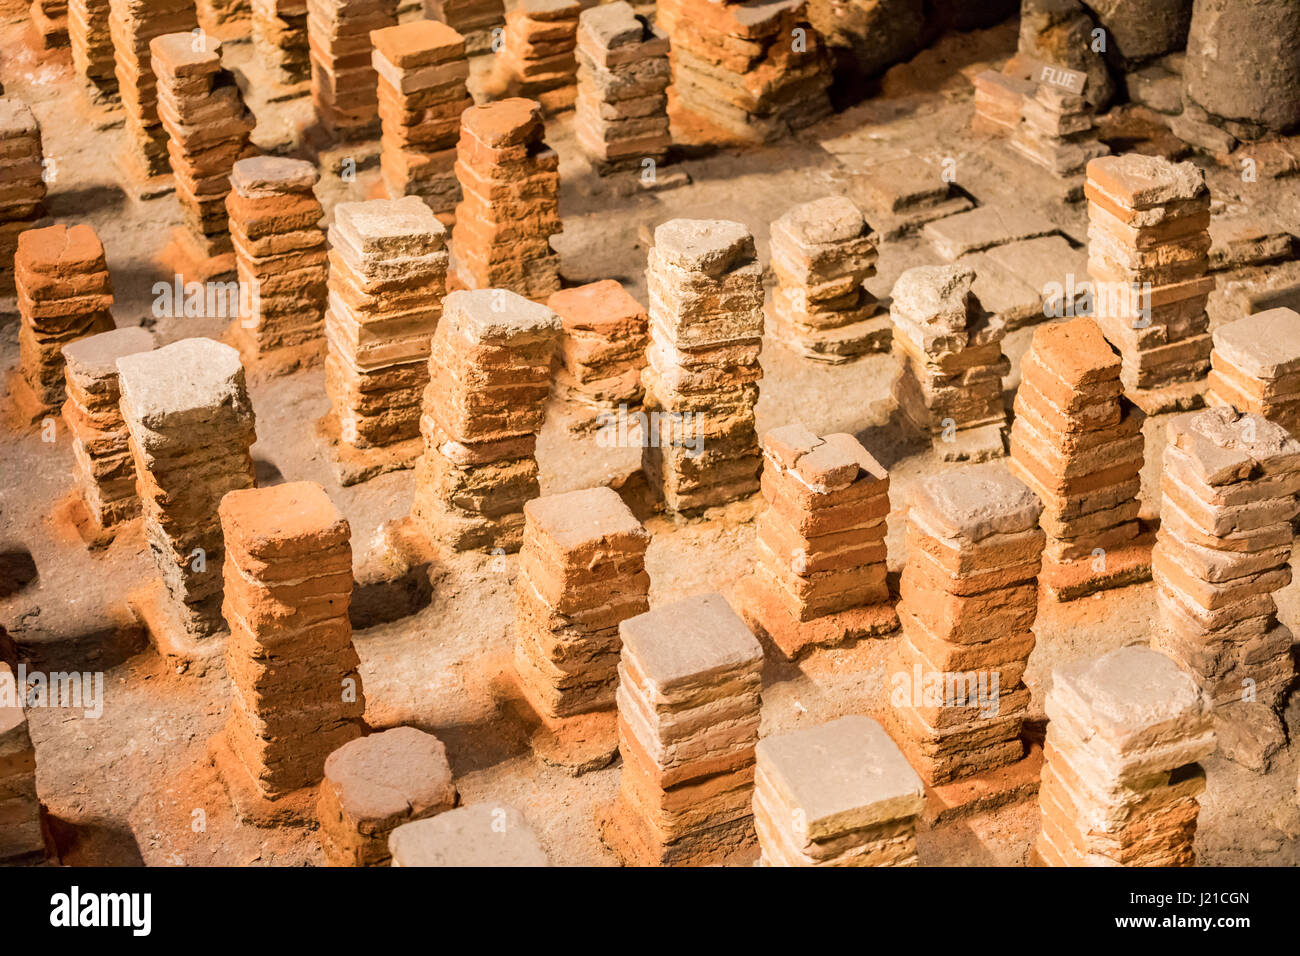 stacks of terra cotta bricks used to support a floor in the roman baths in Bath England, UK - Stock Image